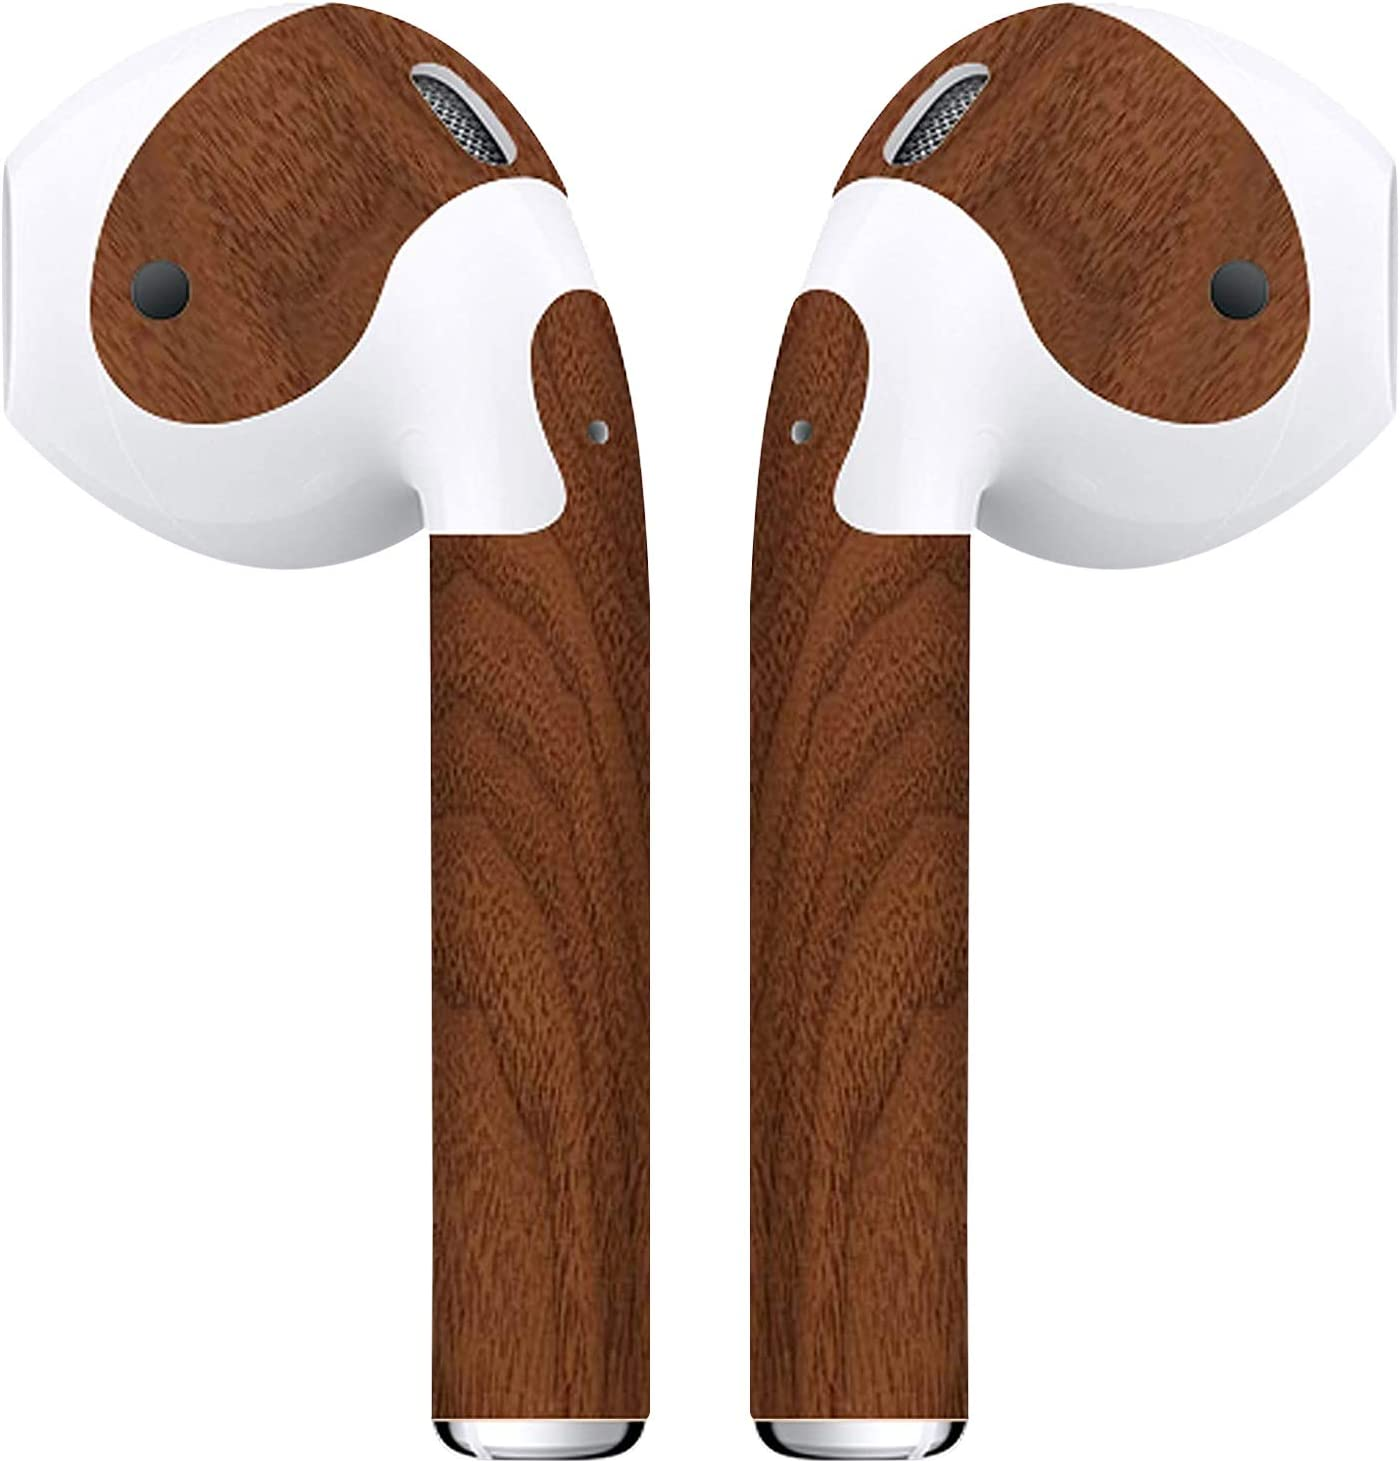 APSkins 2 Piece Printed Skin Wraps Compatible with Apple Airpods – Earpods Stickers & Vinyl Protective Decal for Protection & Customization - Apple Airpods Accessories (Walnut Wood)